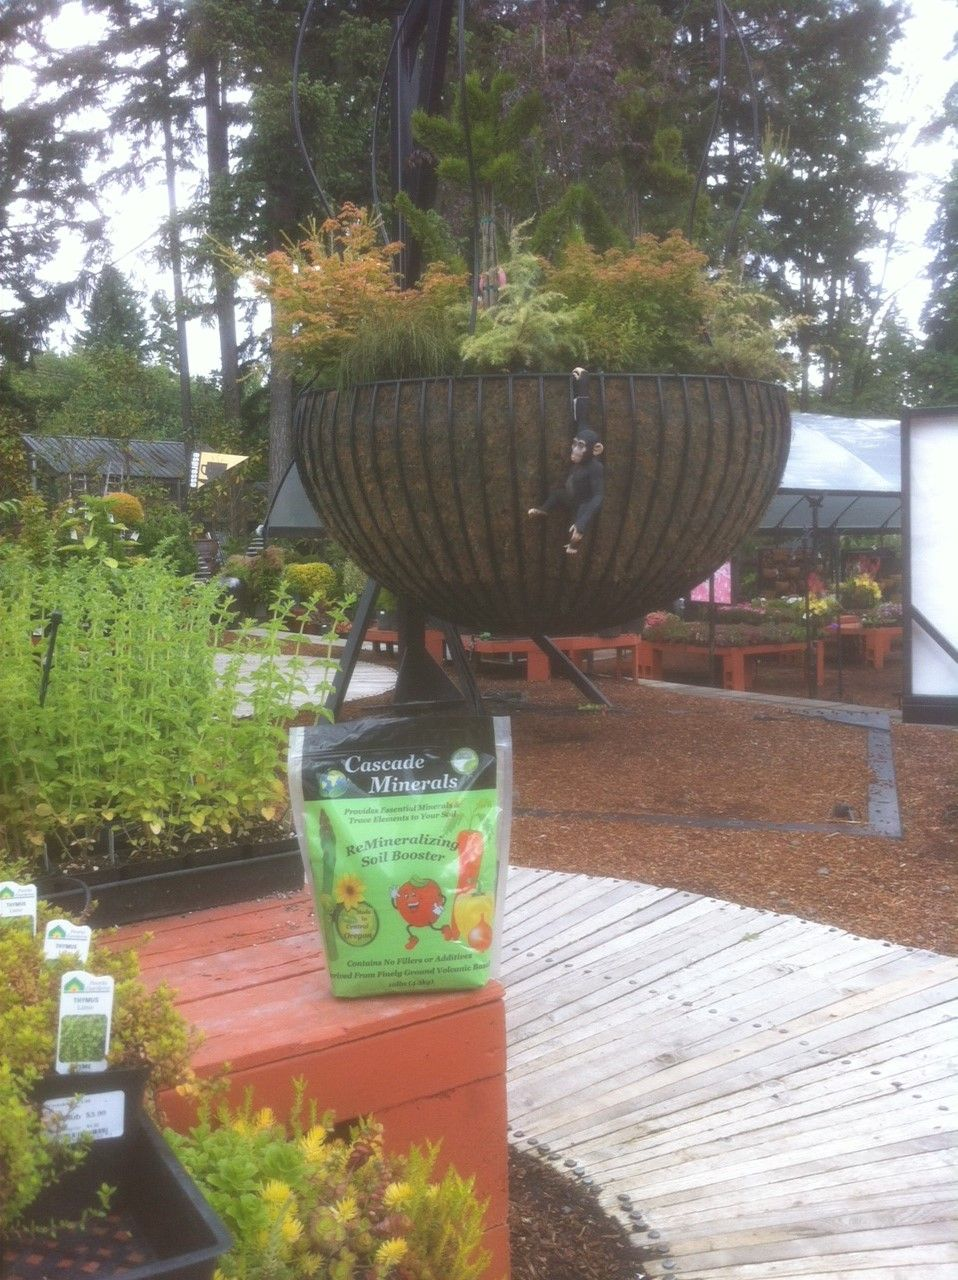 Cascade Minerals Remineralizing Soil Booster Is Available At The The Garden  Corner...home